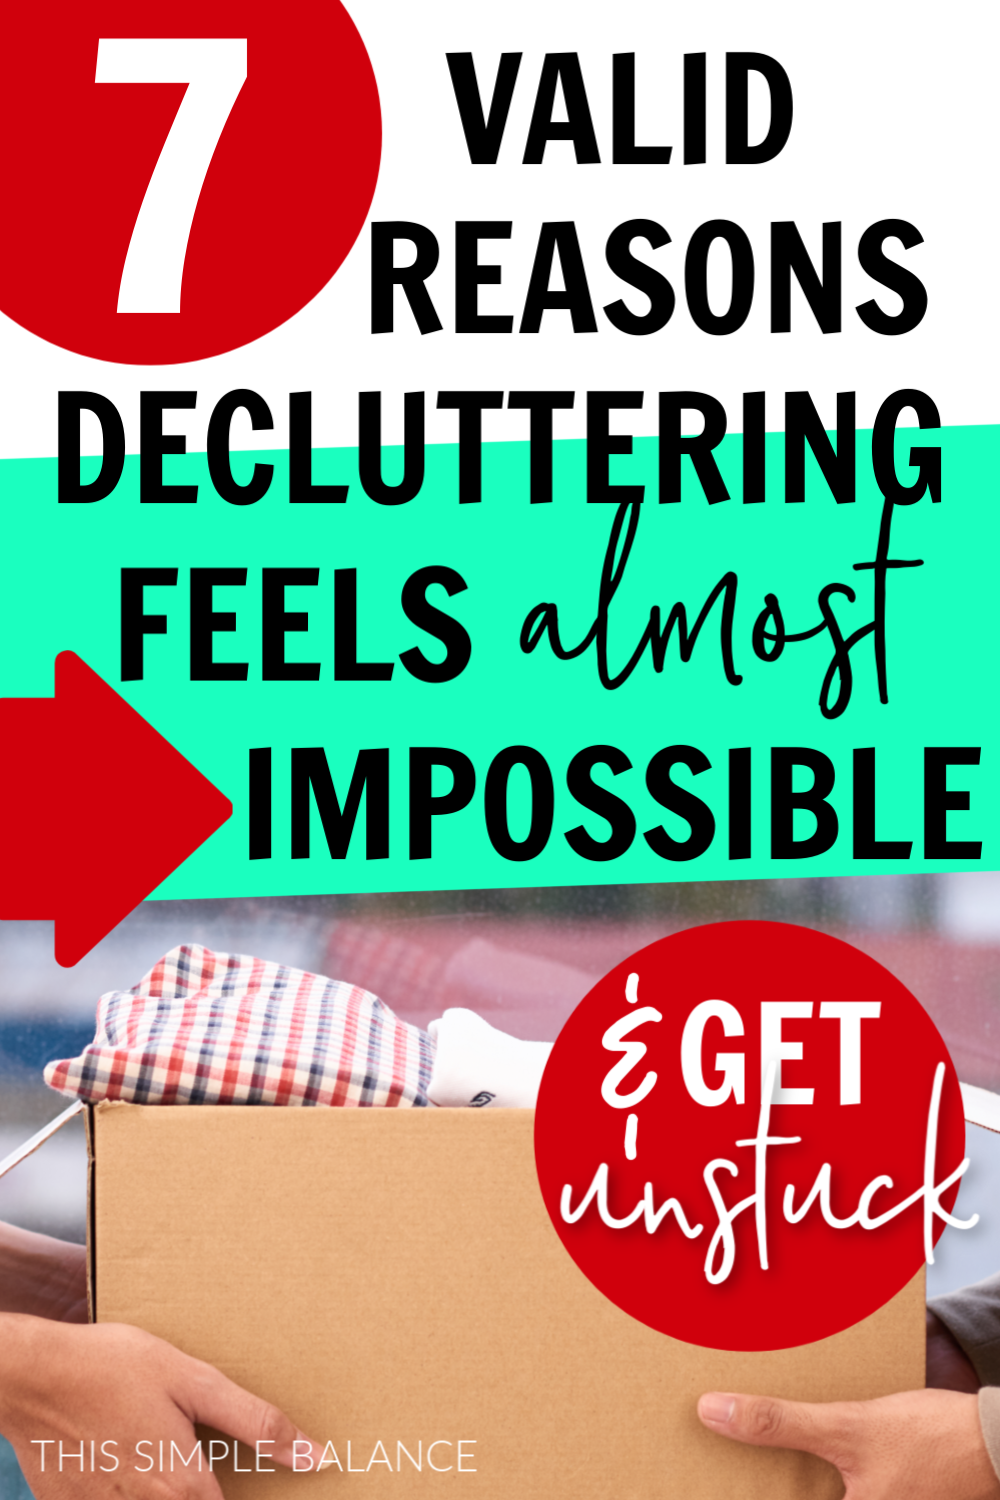 Does decluttering feel way too difficult? Here are 7 possible reasons decluttering is hard for you, with corresponding tips to get unstuck and finally move toward a clutter free home!